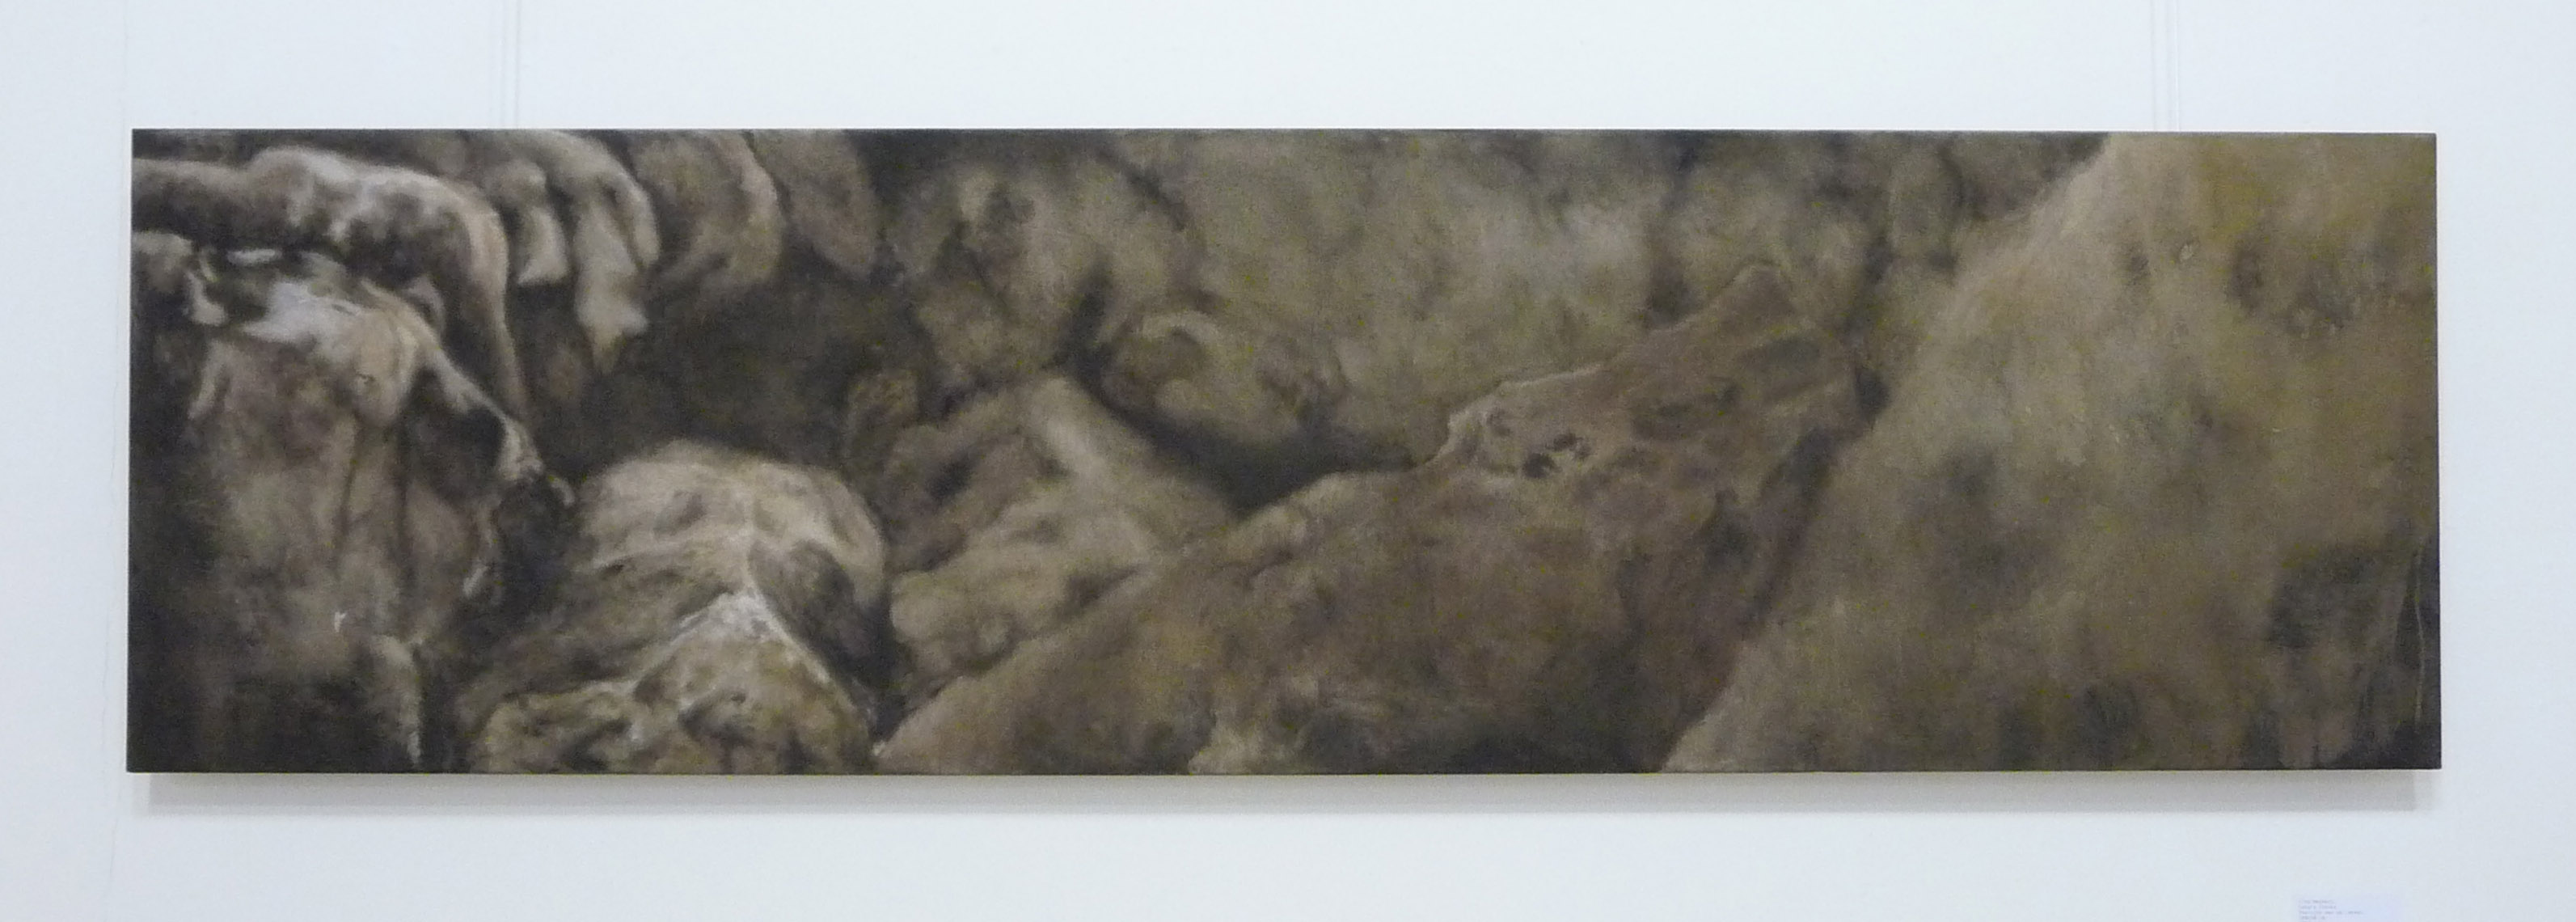 <p><strong>Sahara Stones                  1550 euro</strong><br />Punic wax on canvas        50x180cm